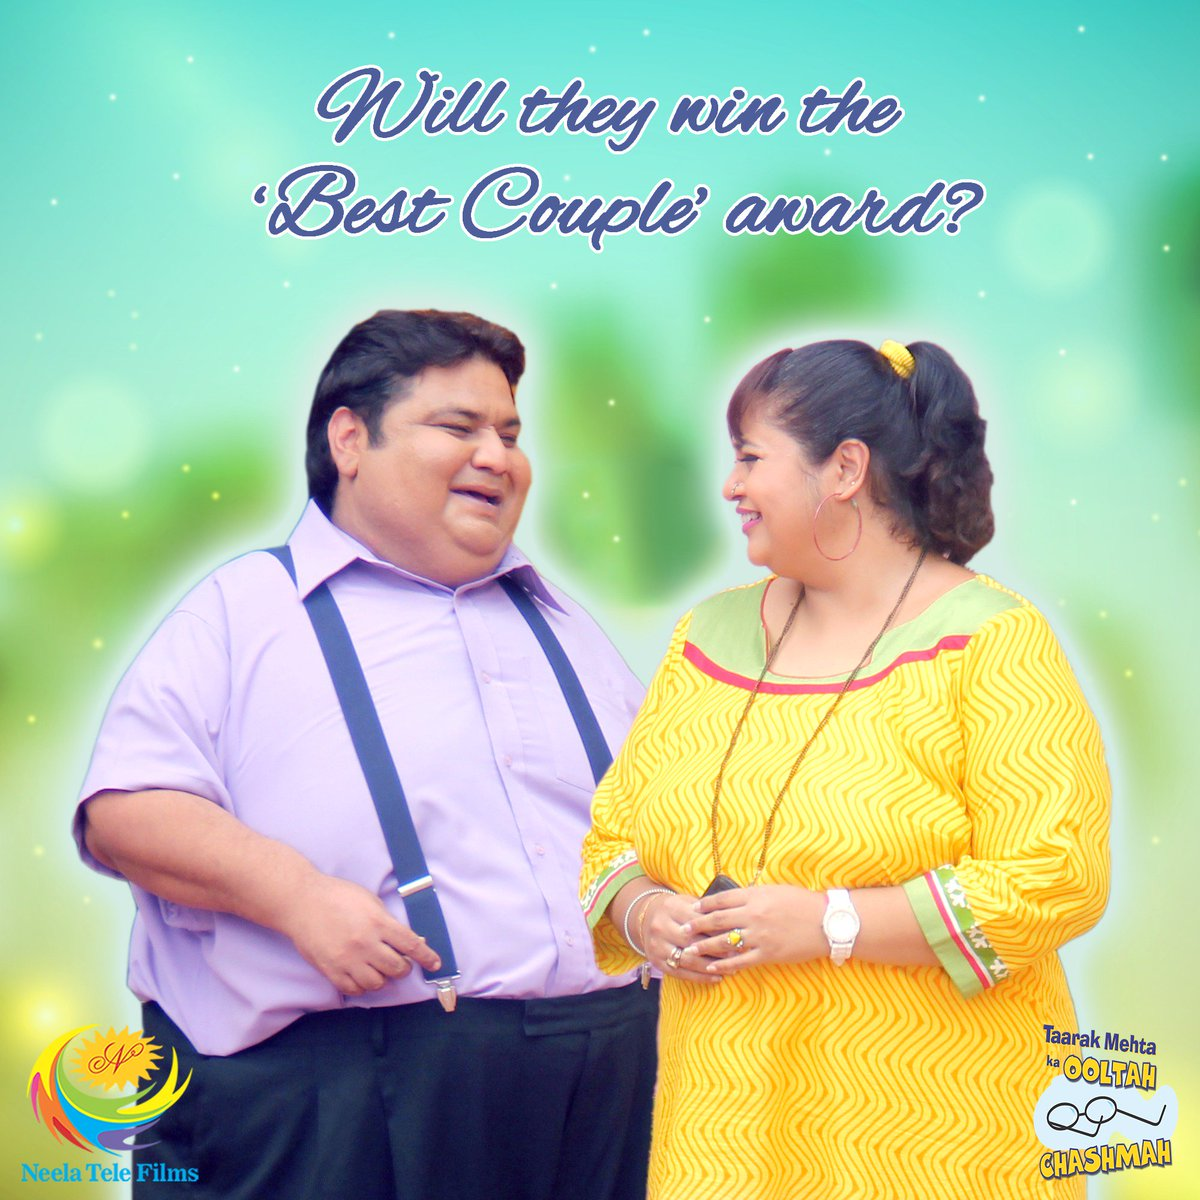 Tmkoc on twitter haathi couple ko aaya hai party ka invitation tmkoc on twitter haathi couple ko aaya hai party ka invitation doctors association se now theyre super excited to win the bestcouple award stopboris Image collections